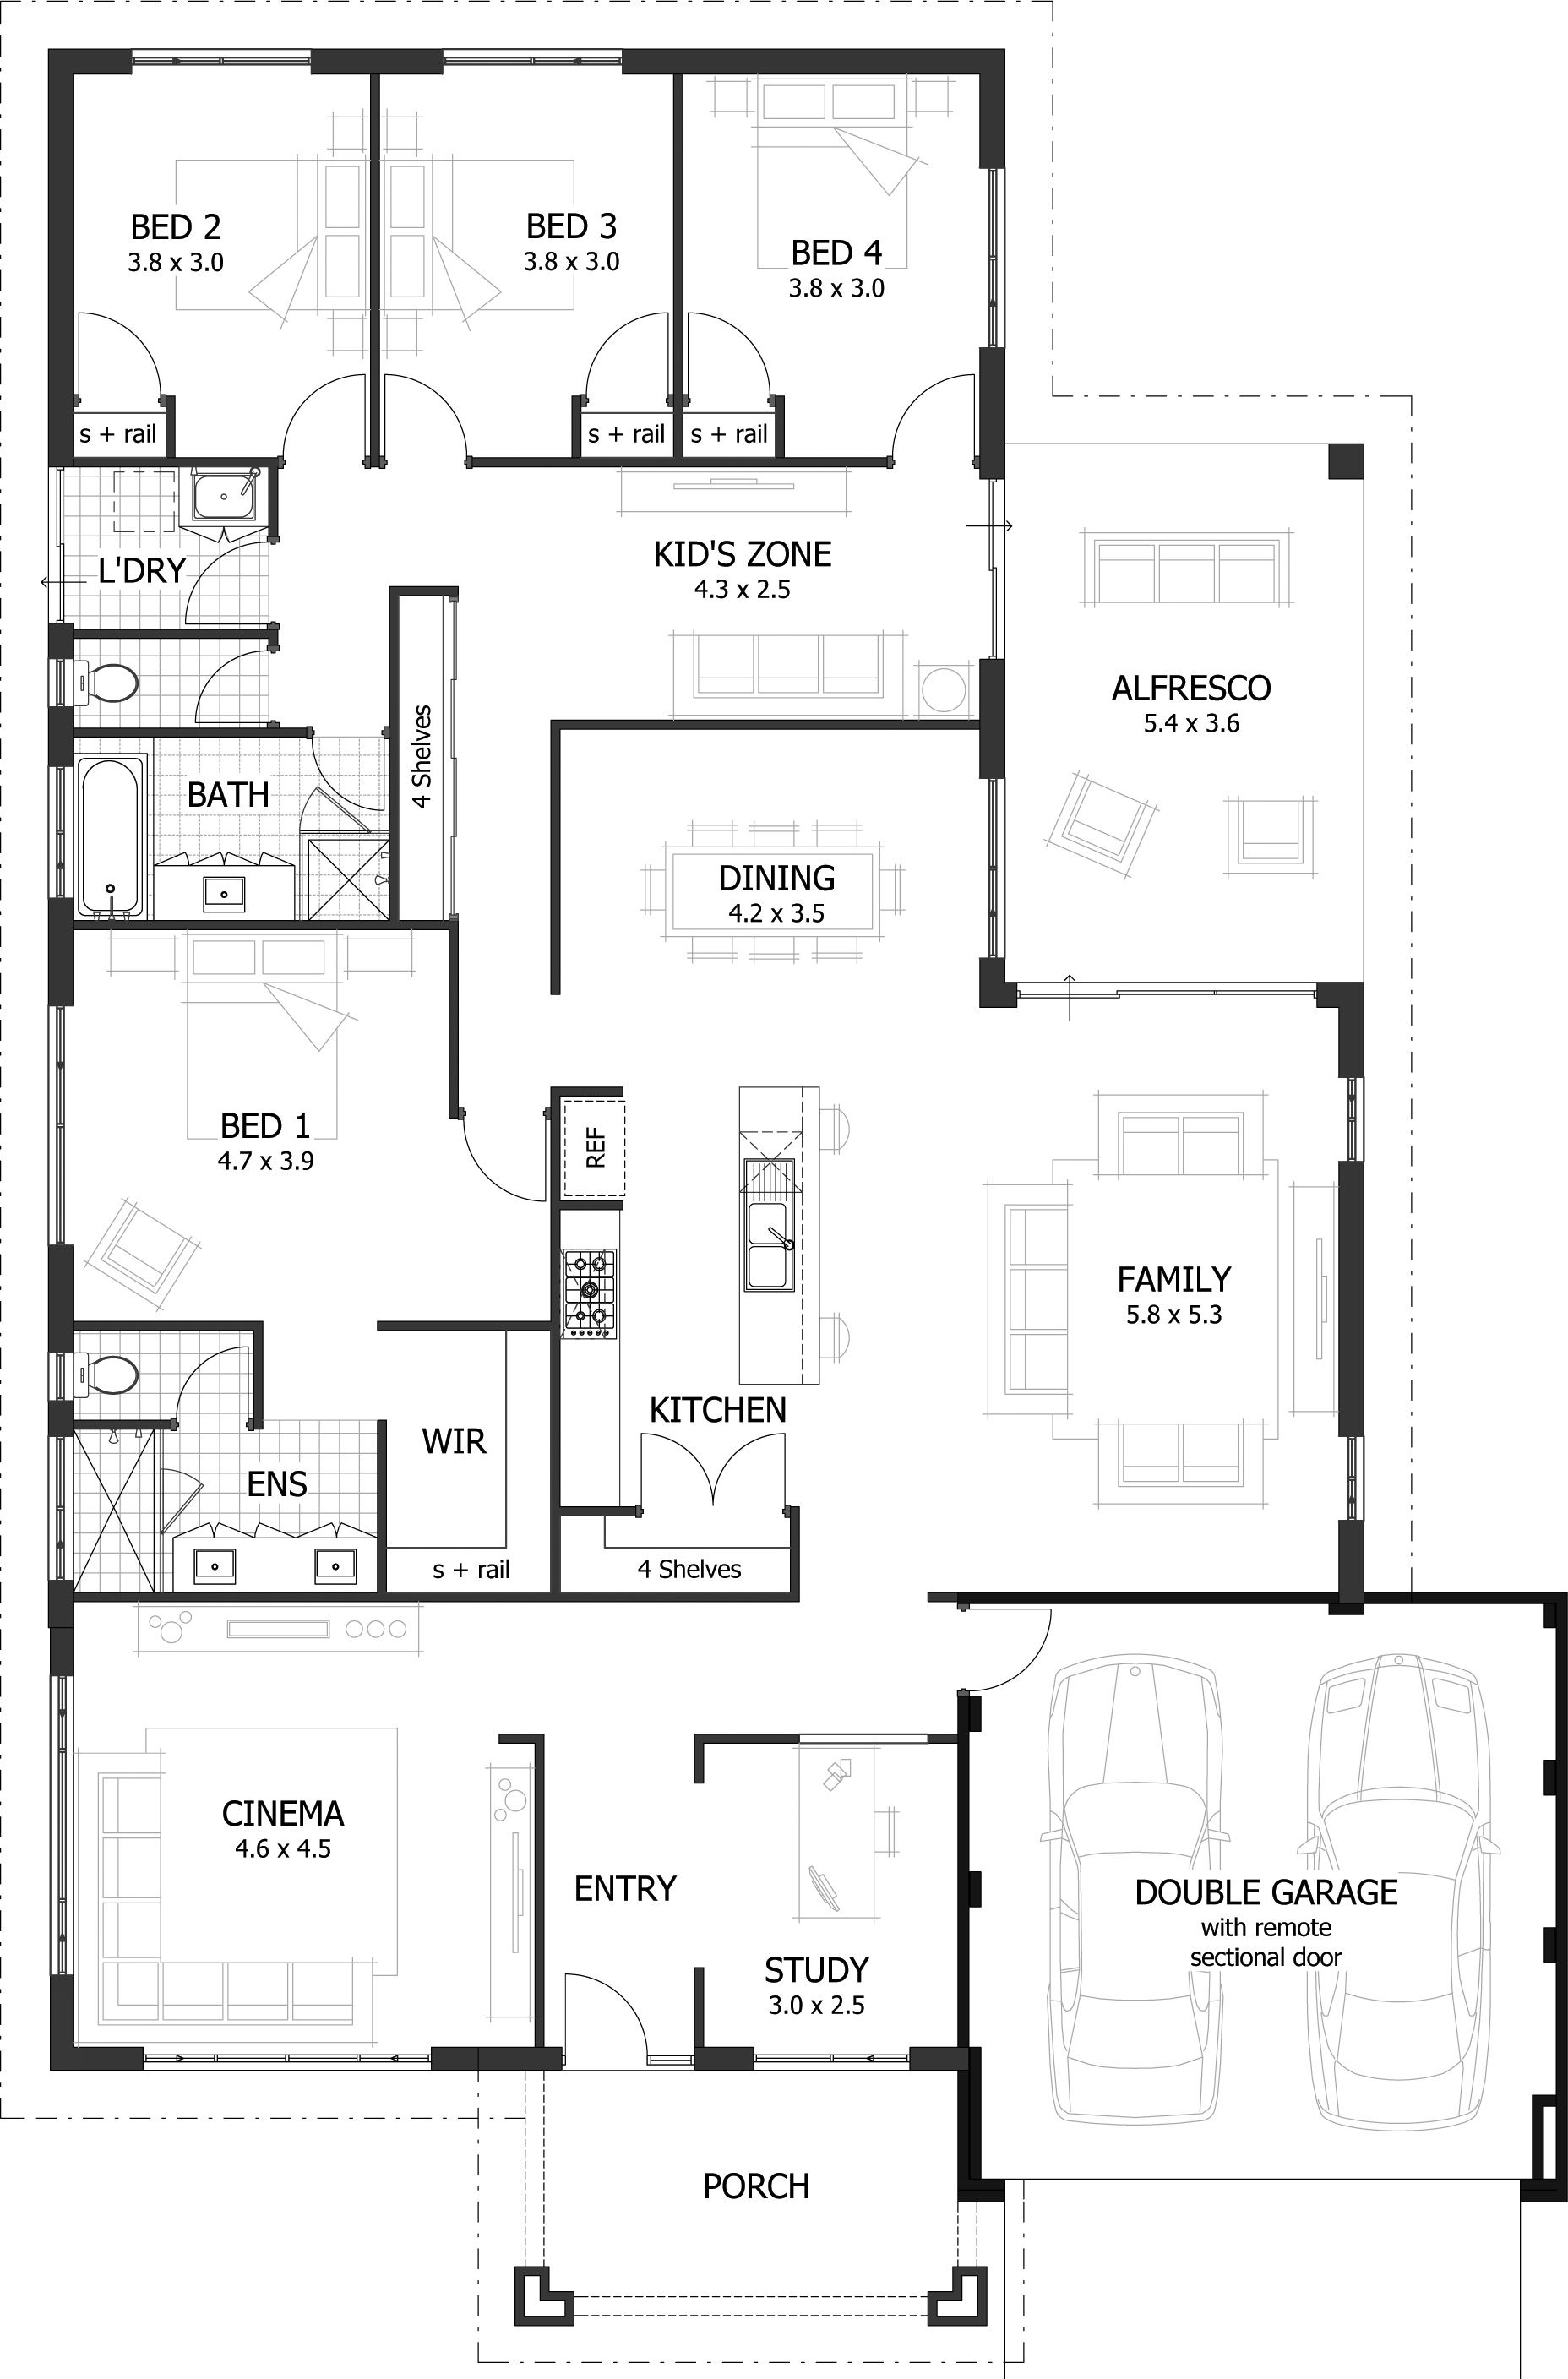 4 bedroom house plans home designs celebration homes for Simple 4 bedroom home plans